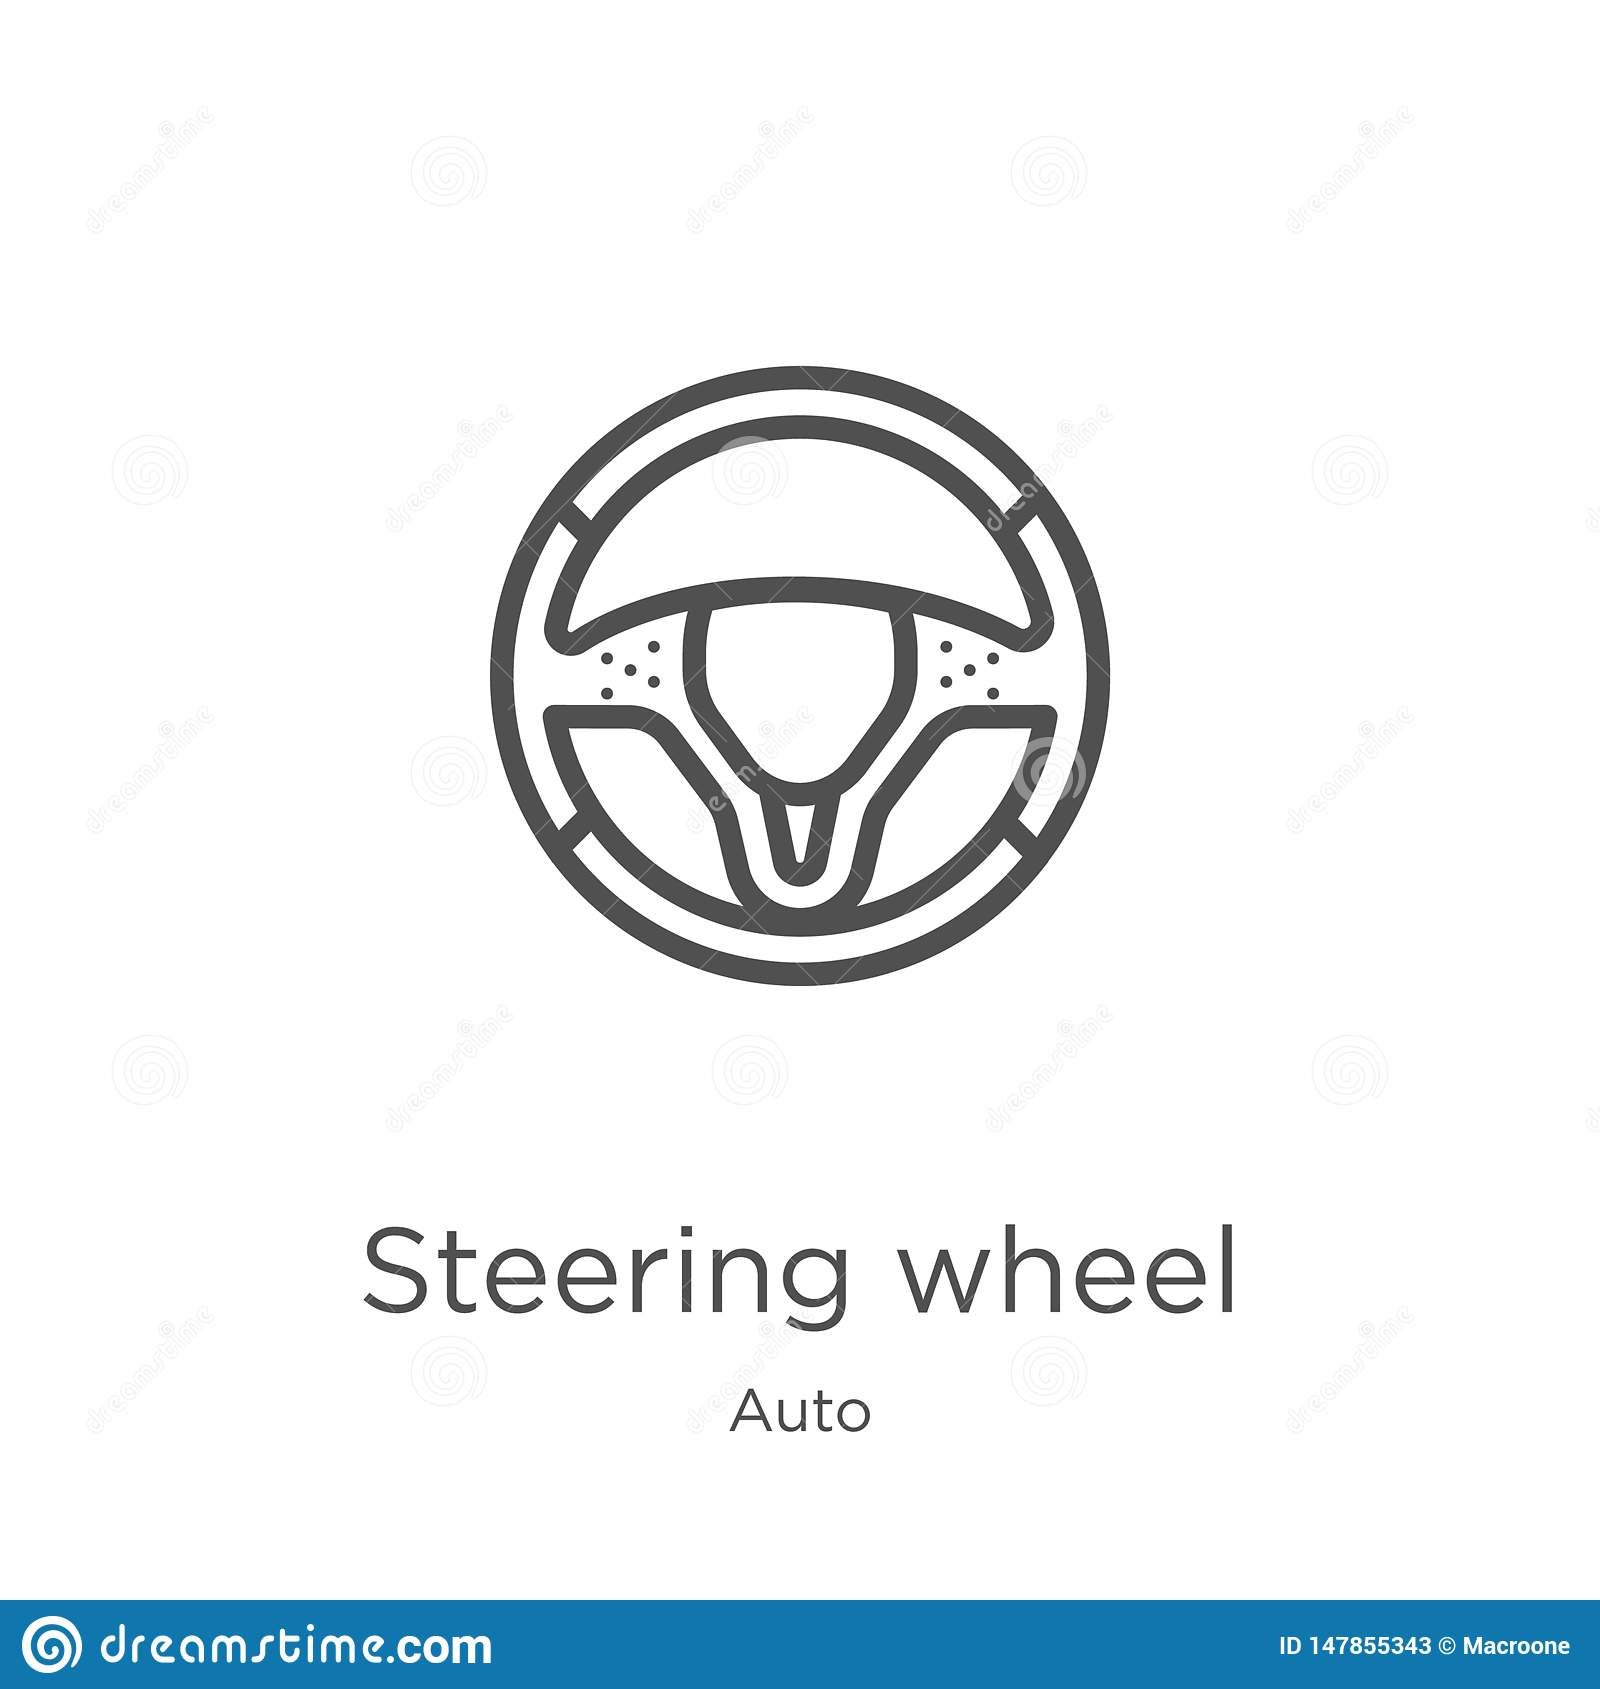 steering wheel icon vector from auto collection. Thin line steering wheel outline icon vector illustration. Outline, thin line